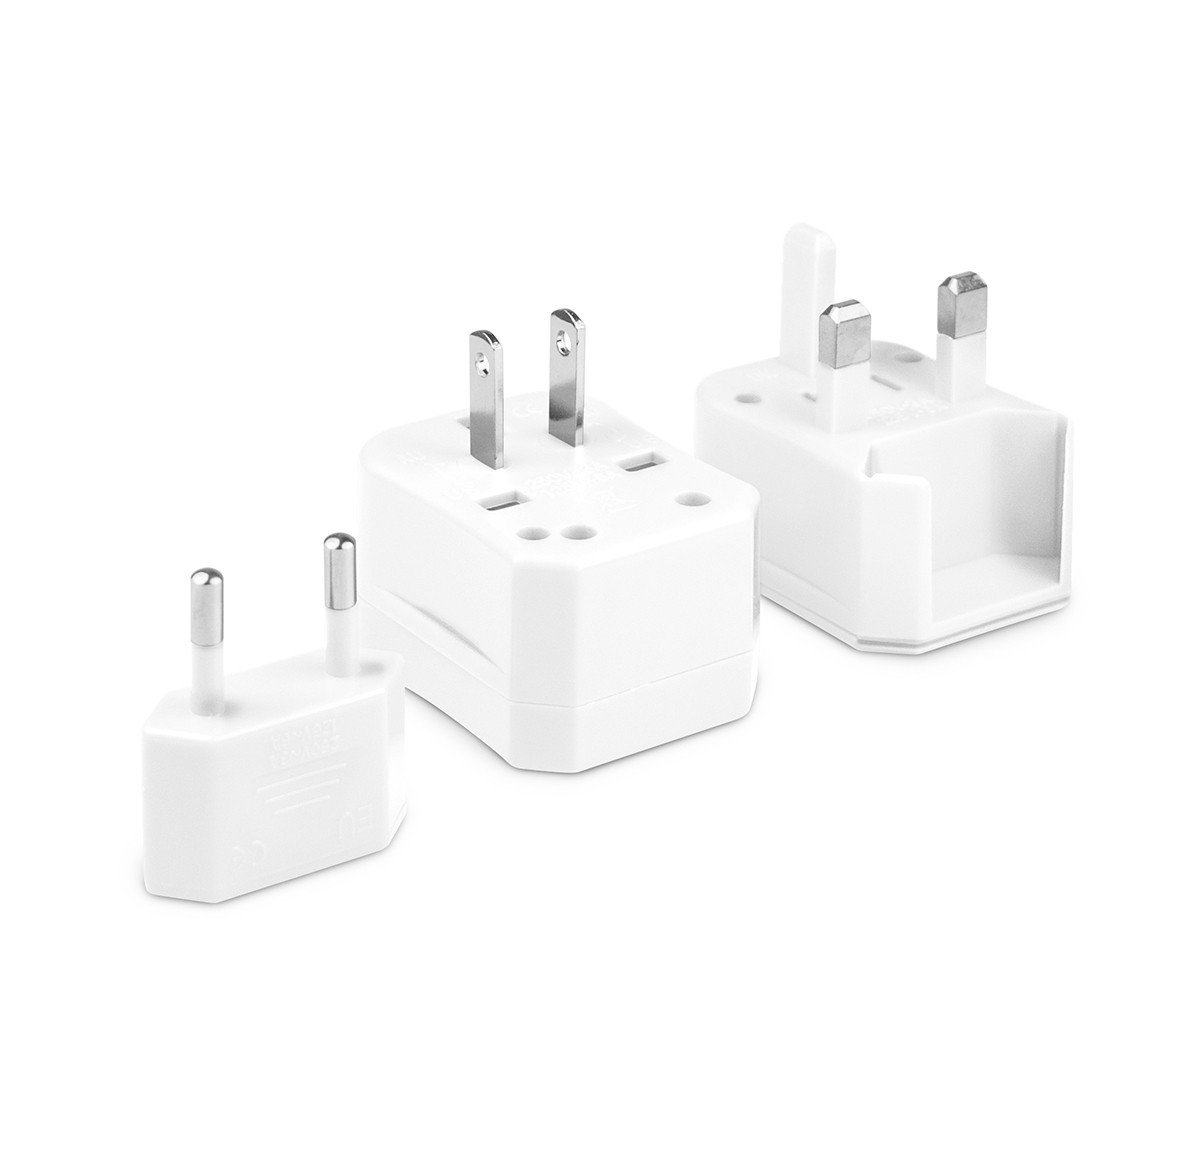 AC & Travel Adapters